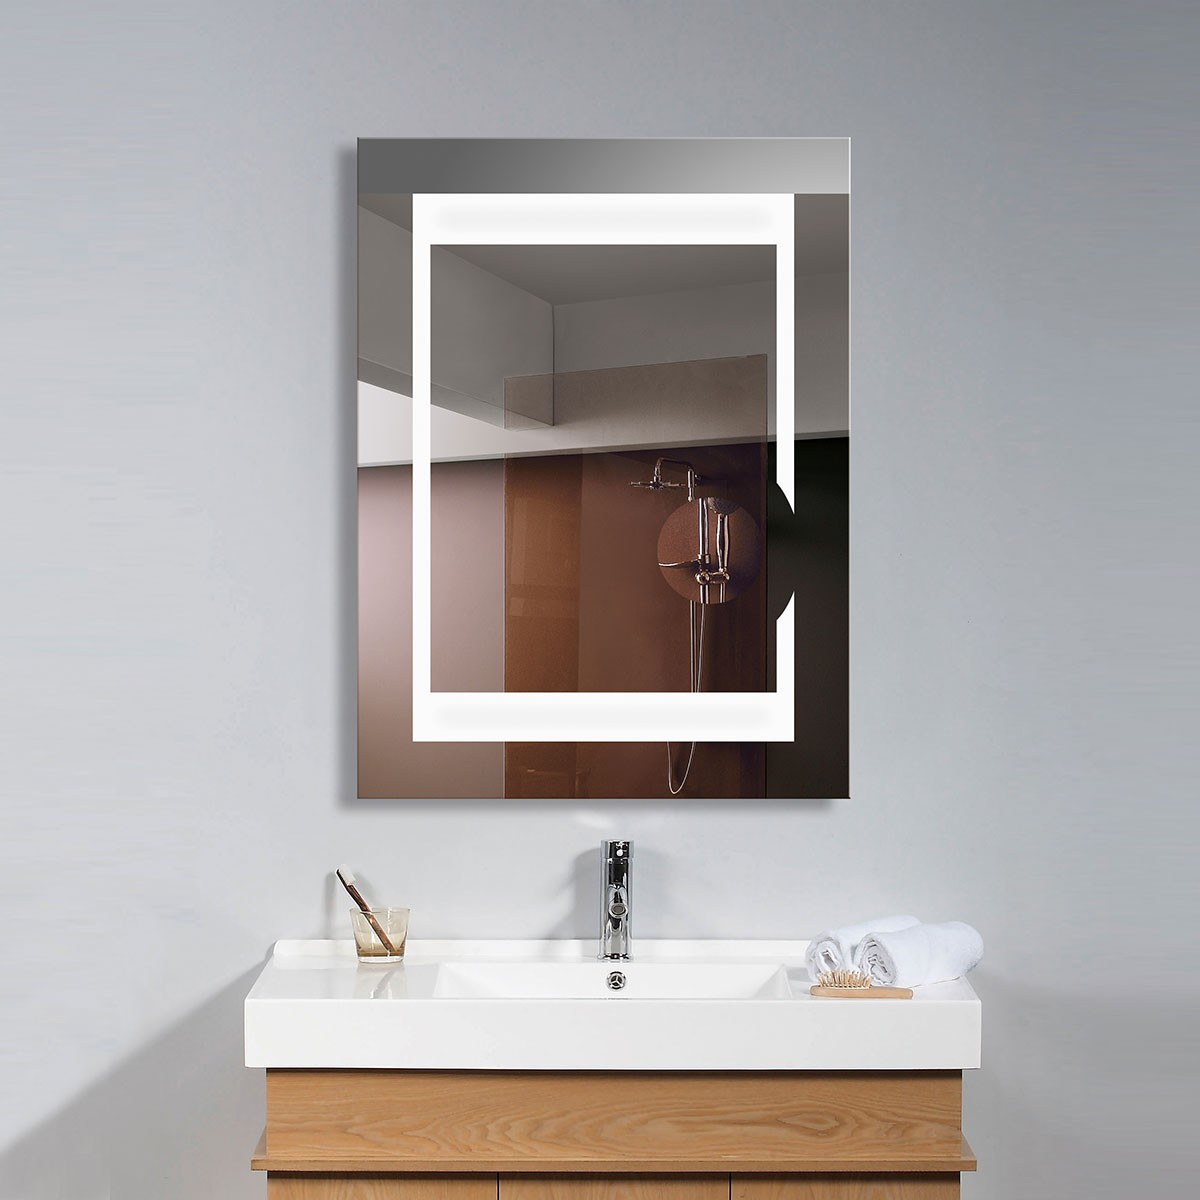 24 x 32 In Vertical LED Bathroom Mirror with Circular Magnifier and ON/OFF Switch (DK-OD-C280)